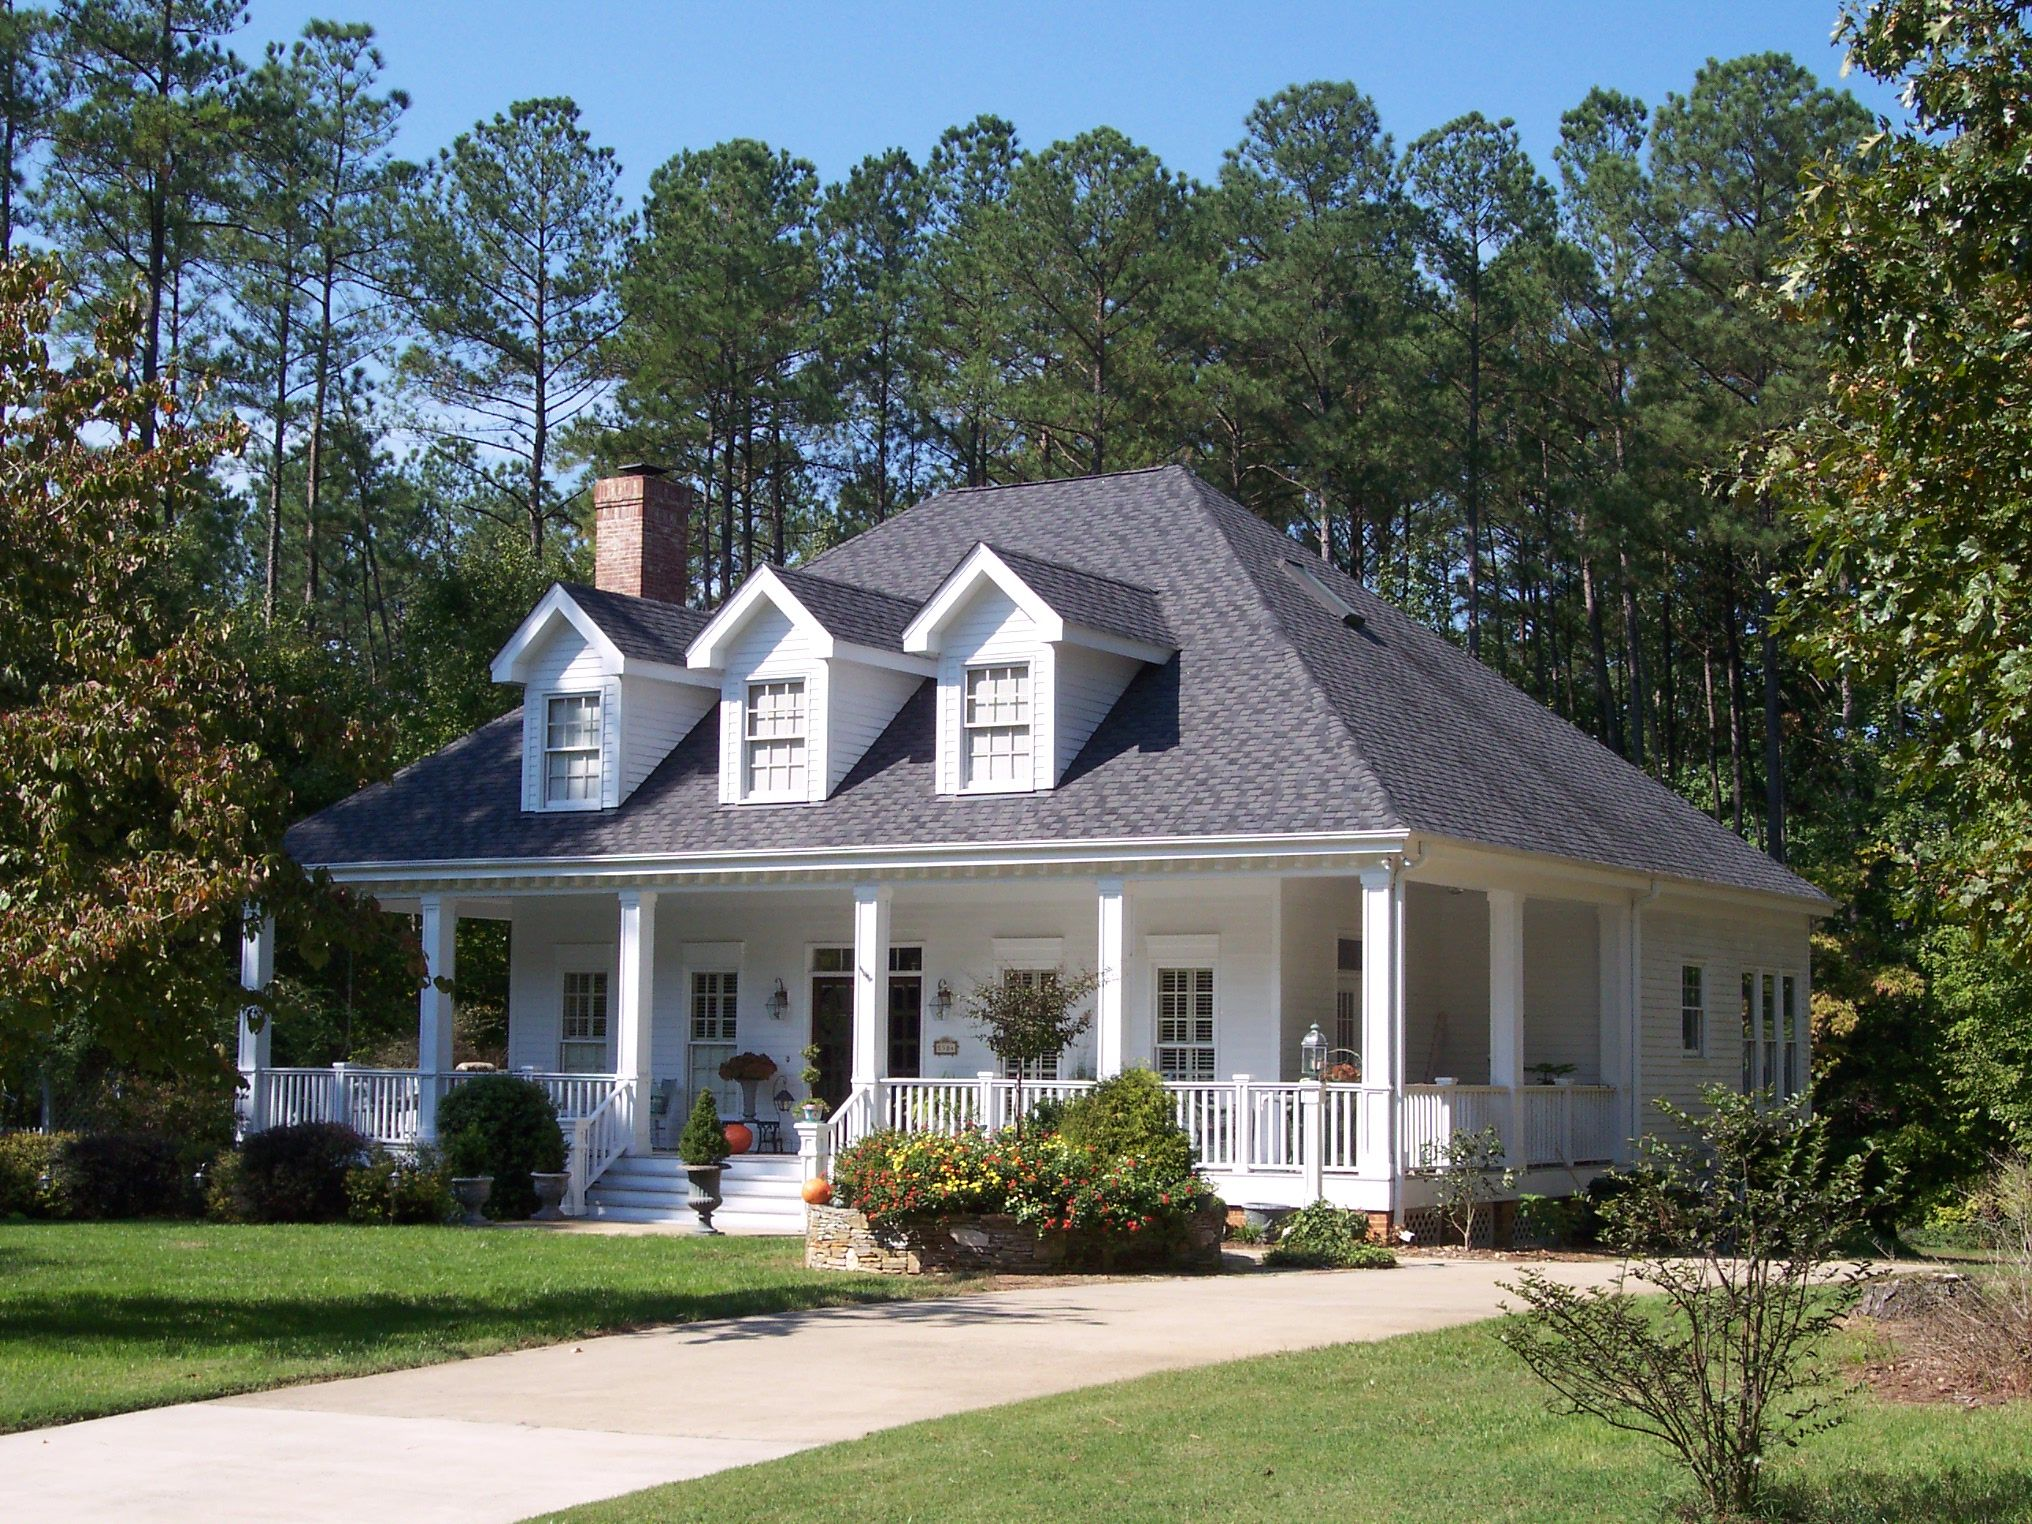 Adorable Southern Home Plan Southern house plans, House